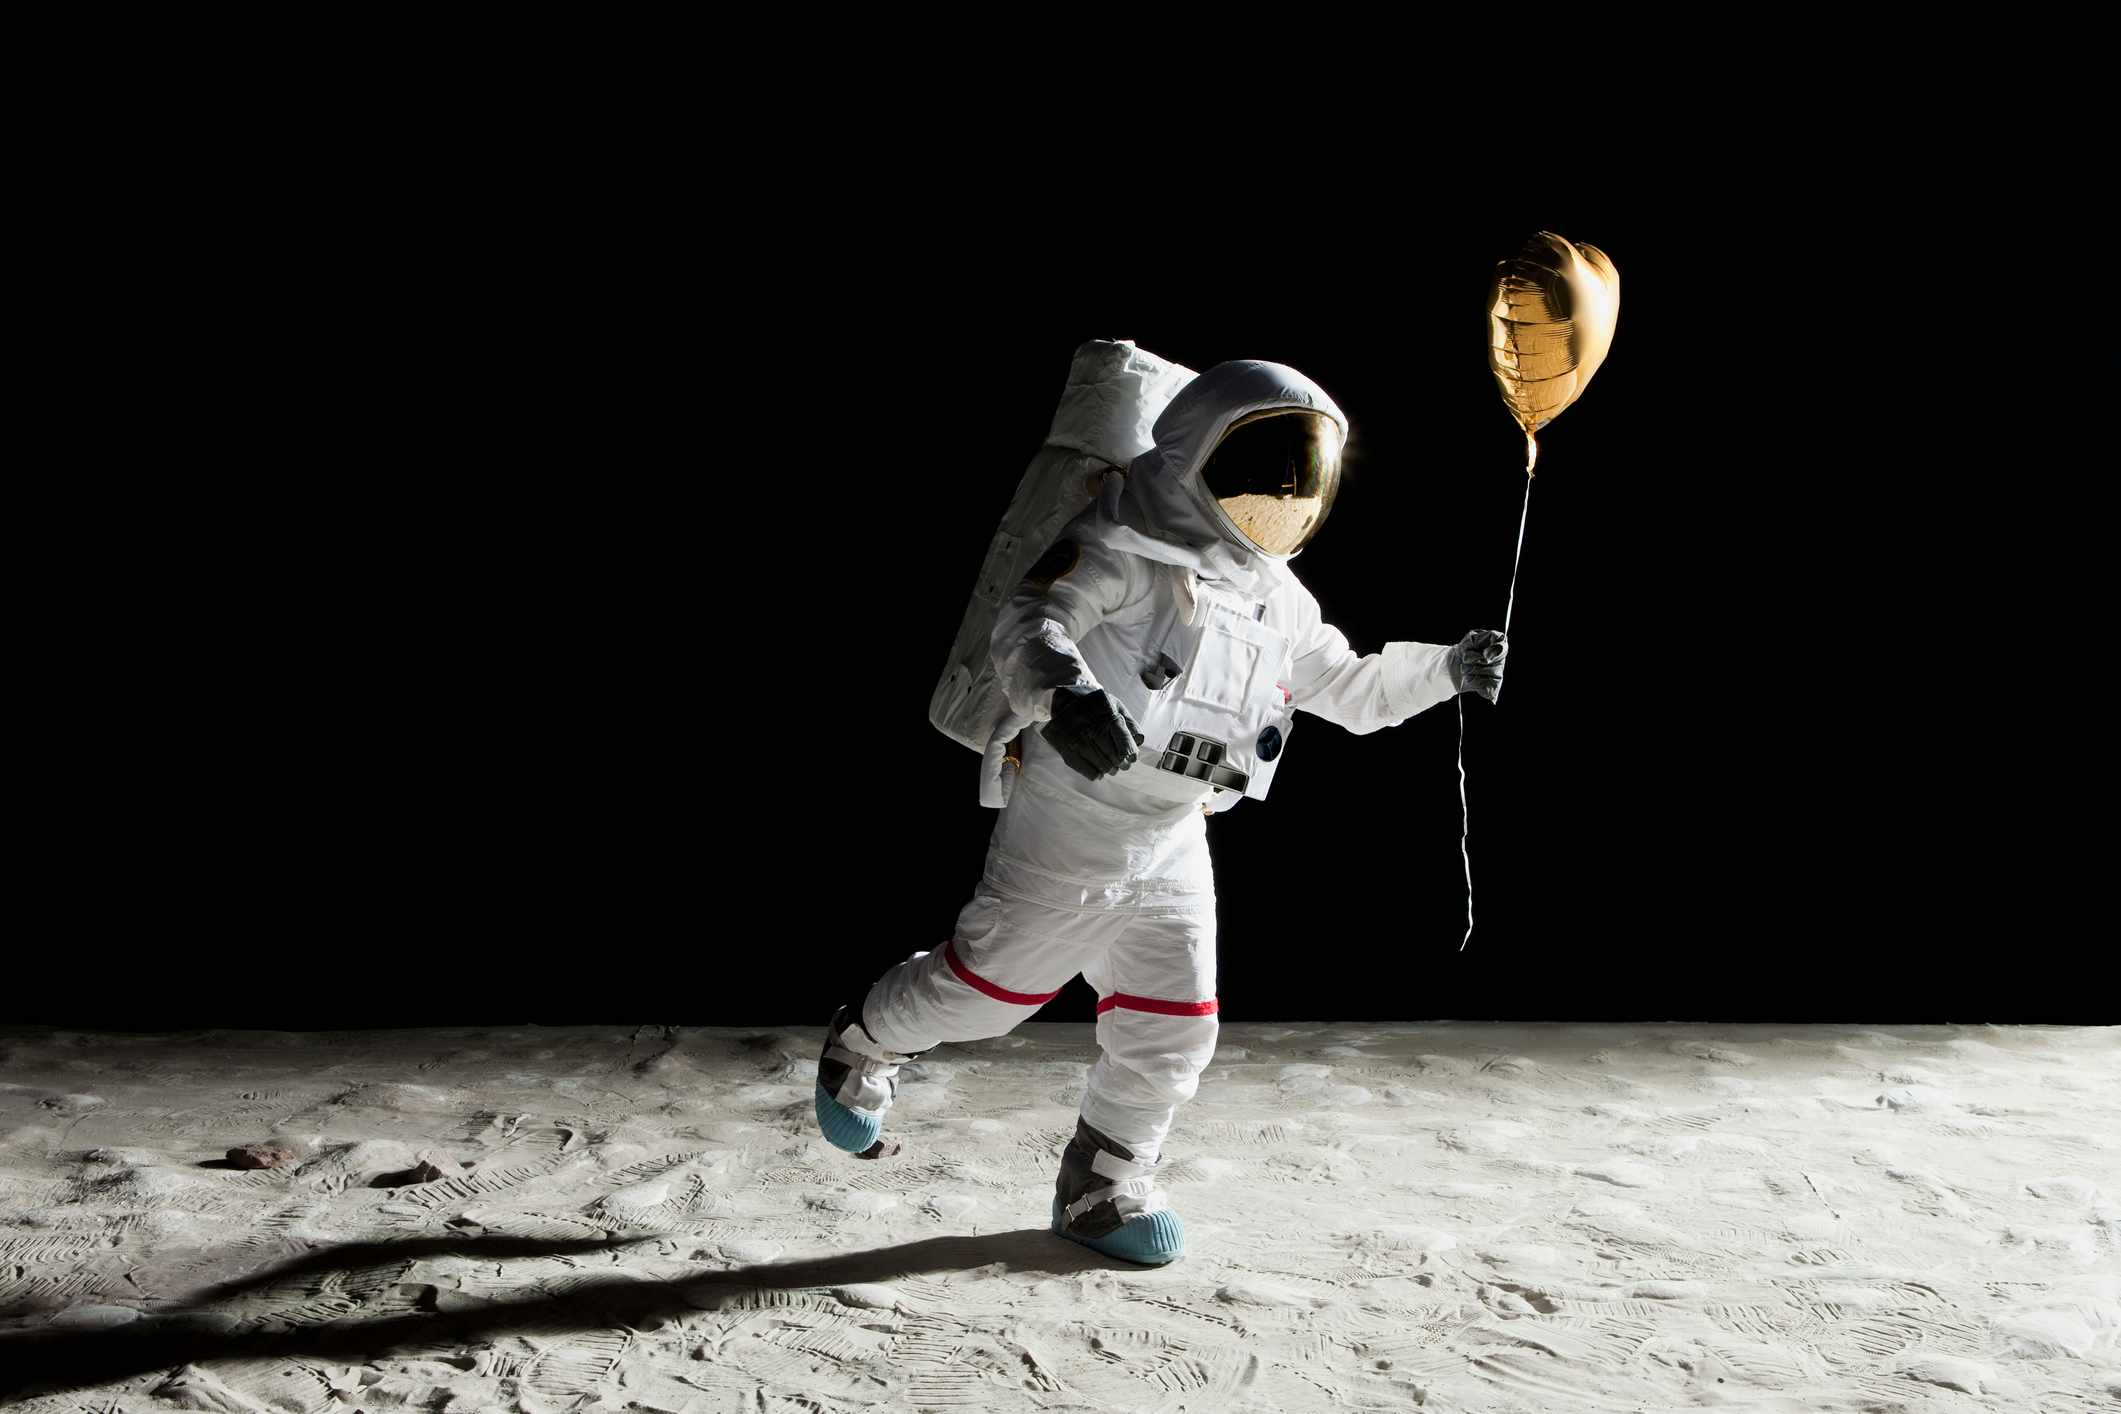 Would helium balloons float upwards on a spaceship? © Getty Images